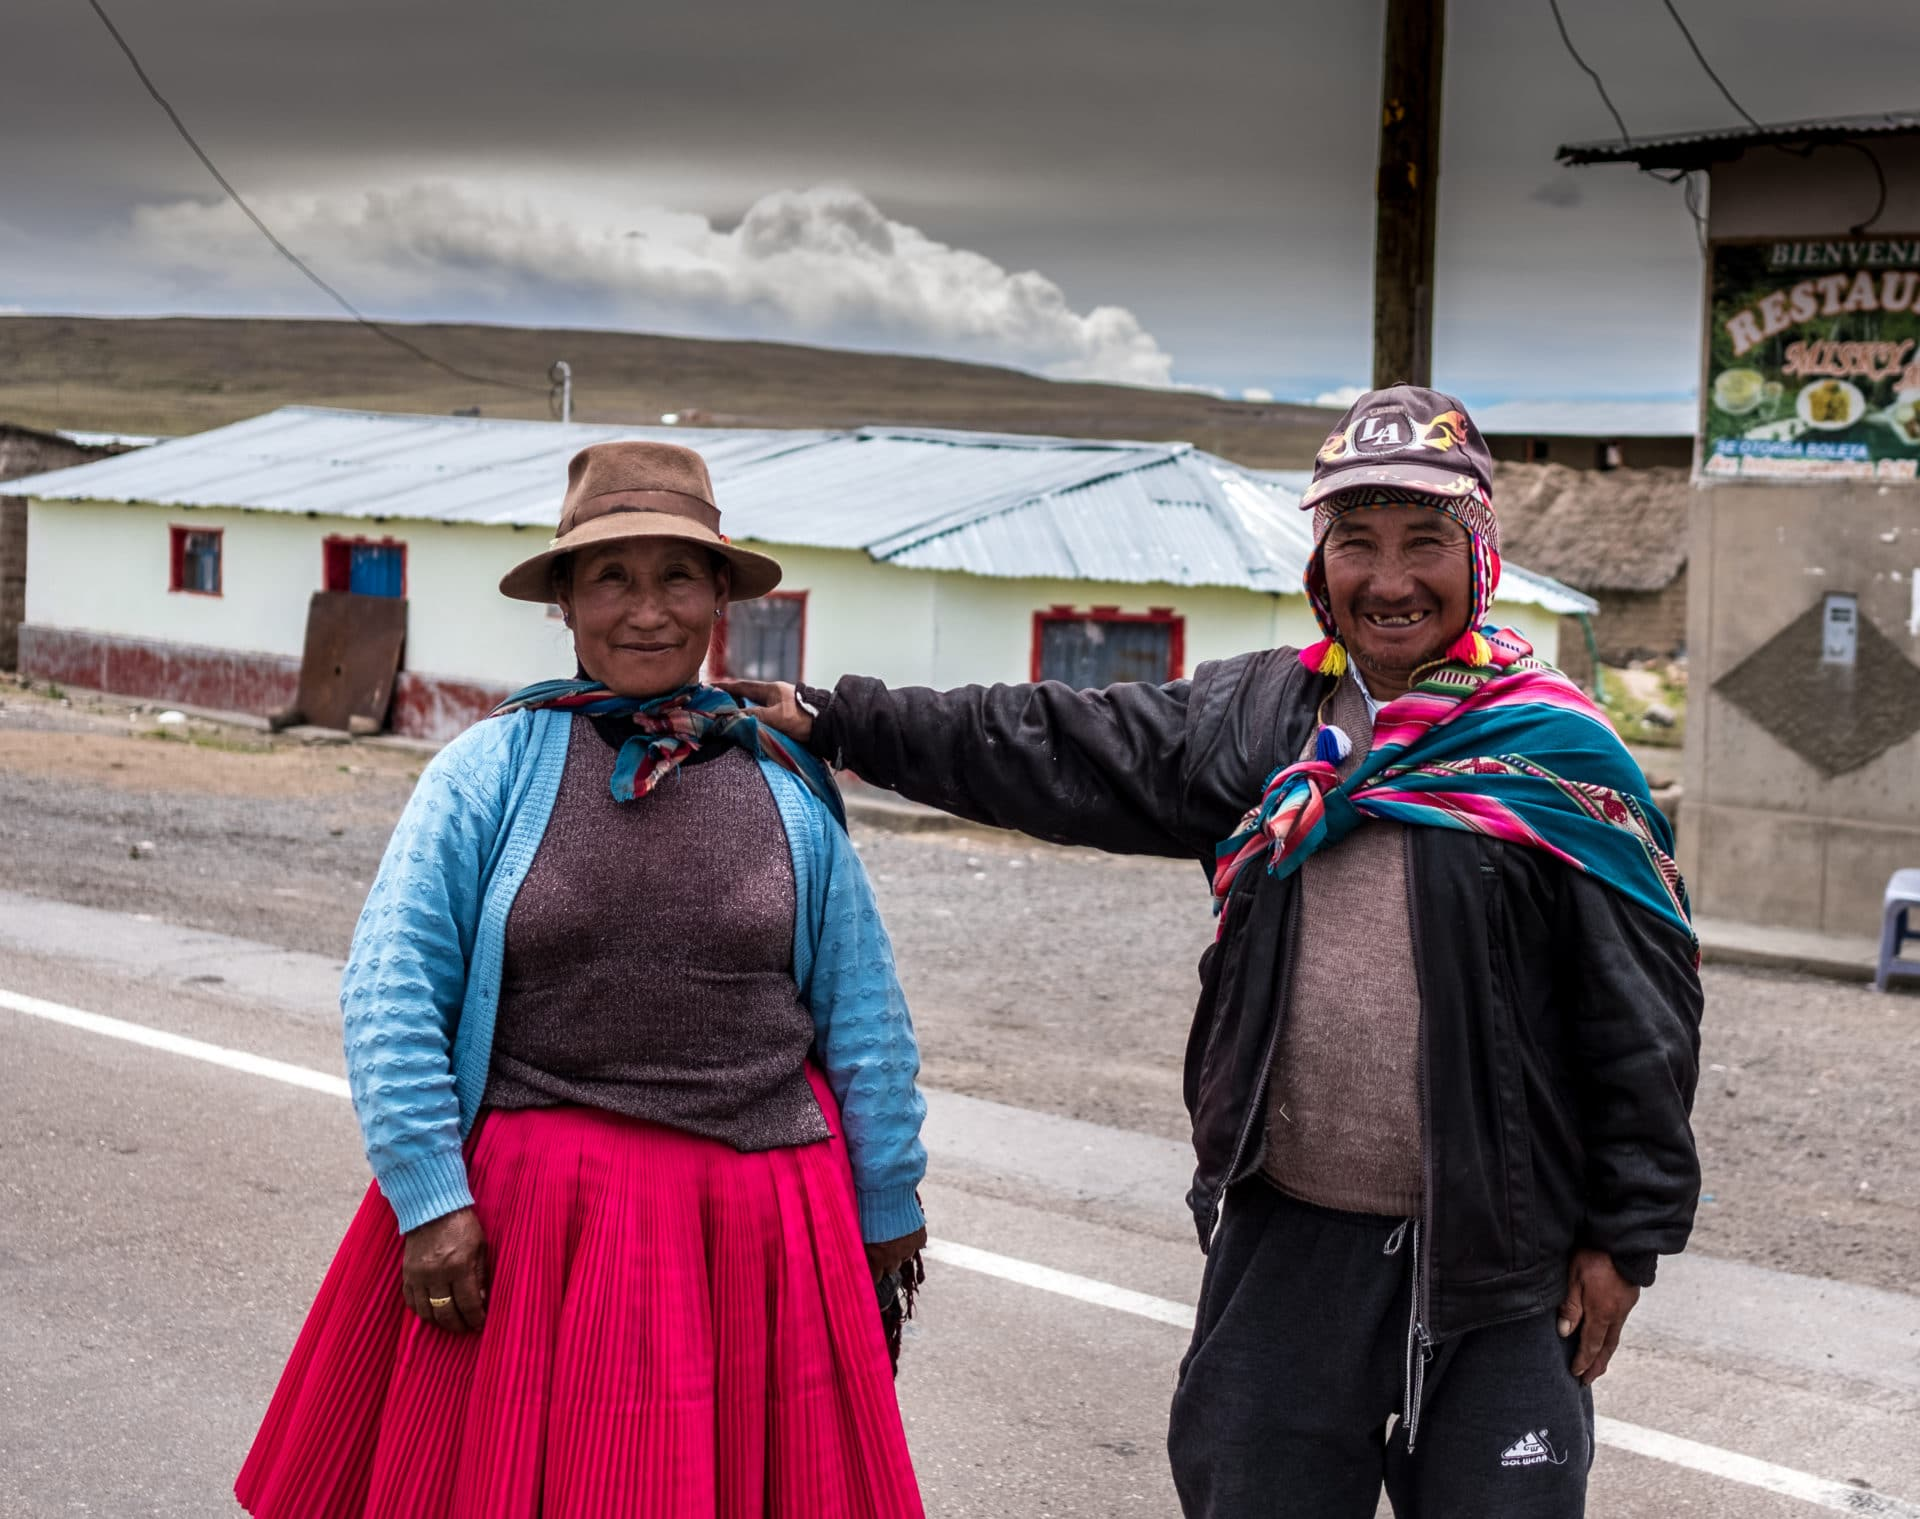 Man and Lady high in Peru